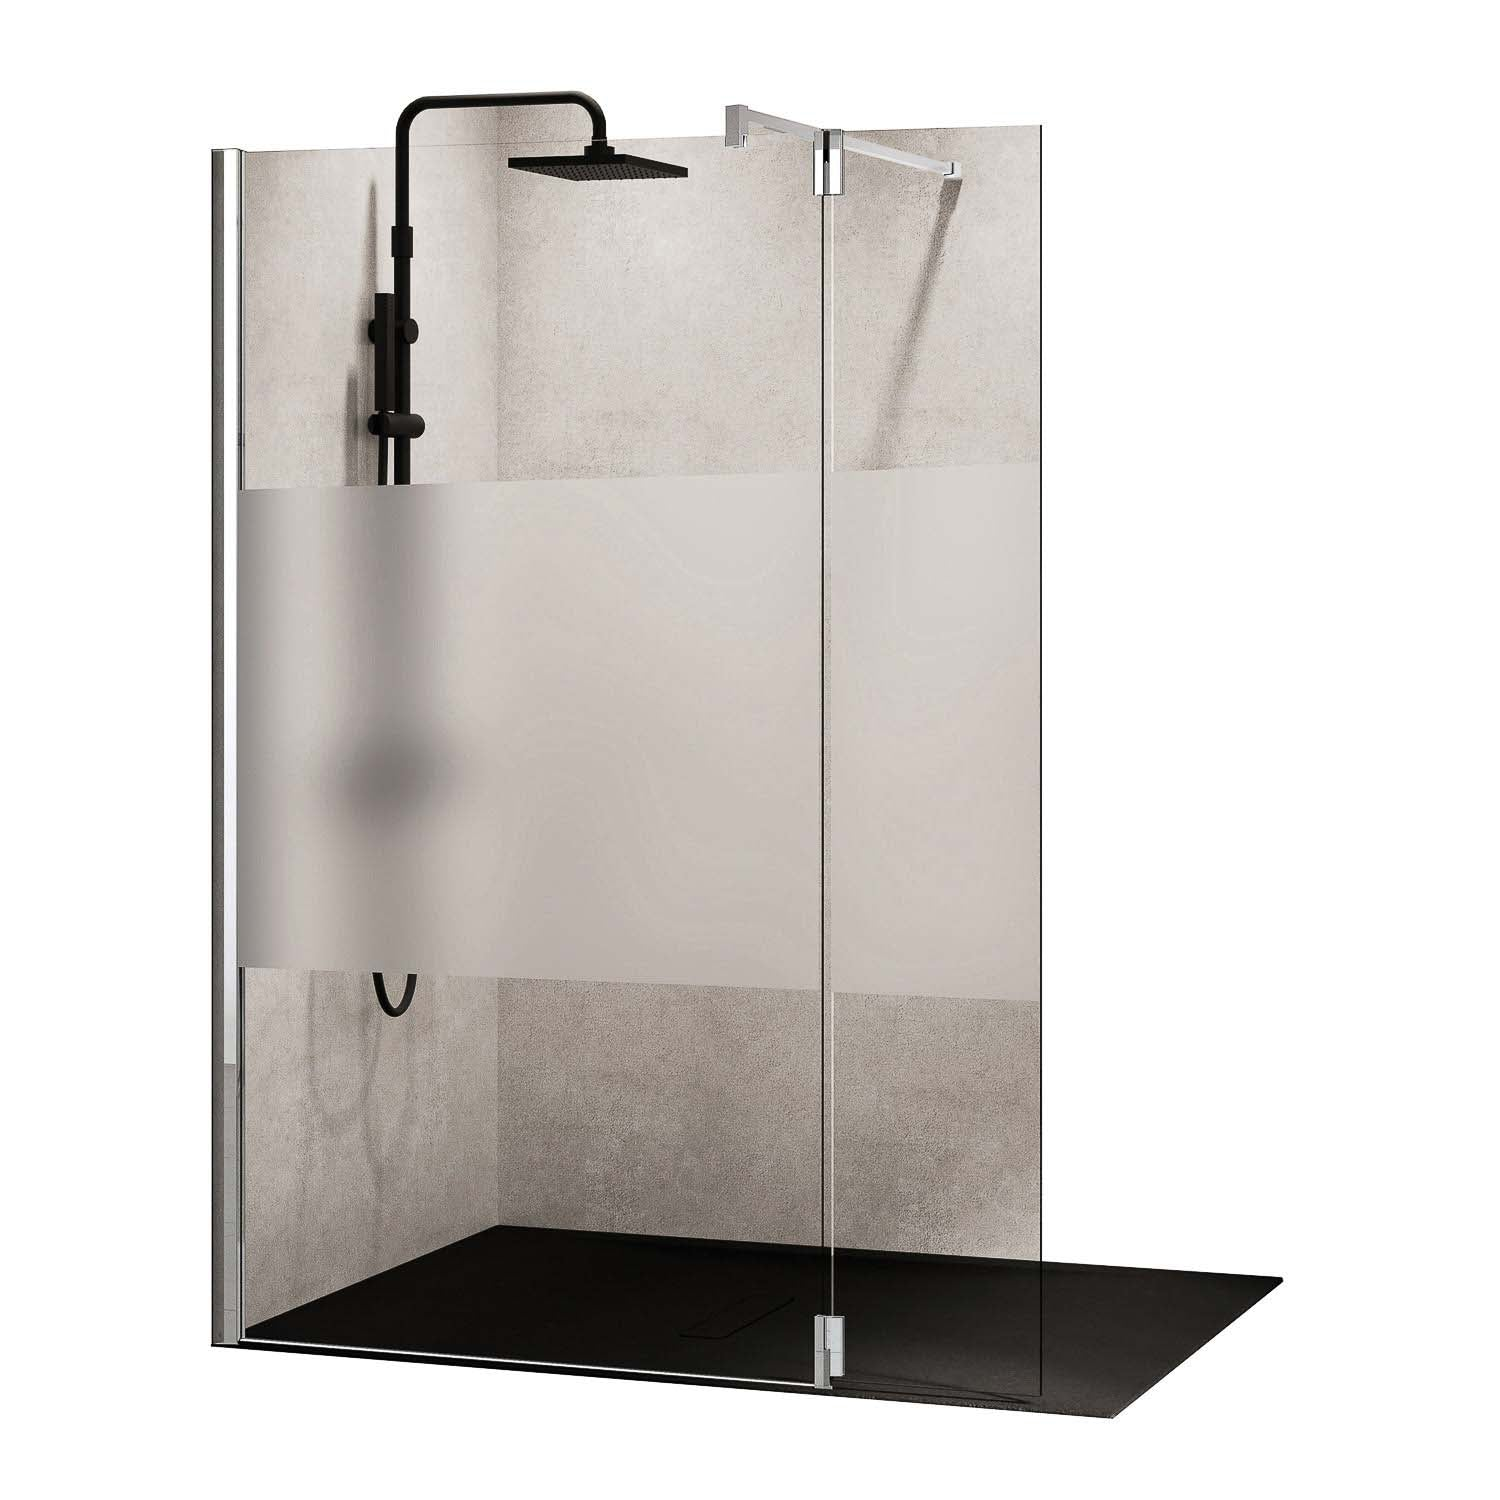 970-1000mm Ergo Wet Room Screen Satin Band Glass with a chrome finish on a white background